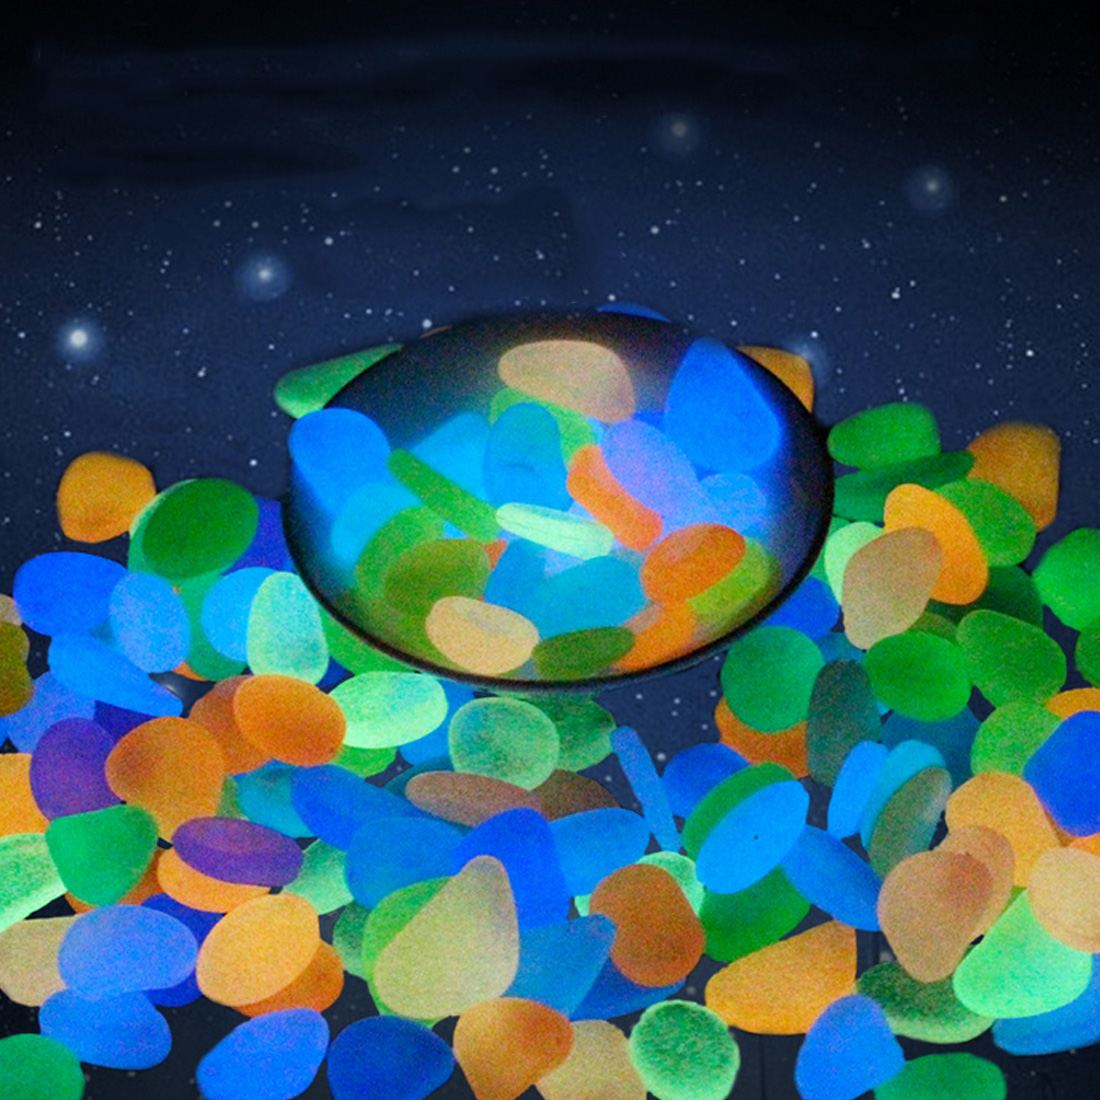 10Pcs Glow in the Dark Garden Pebbles Glow Stones Rocks for Walkways Garden Path Patio Lawn Garden Yard Decor Luminous stones